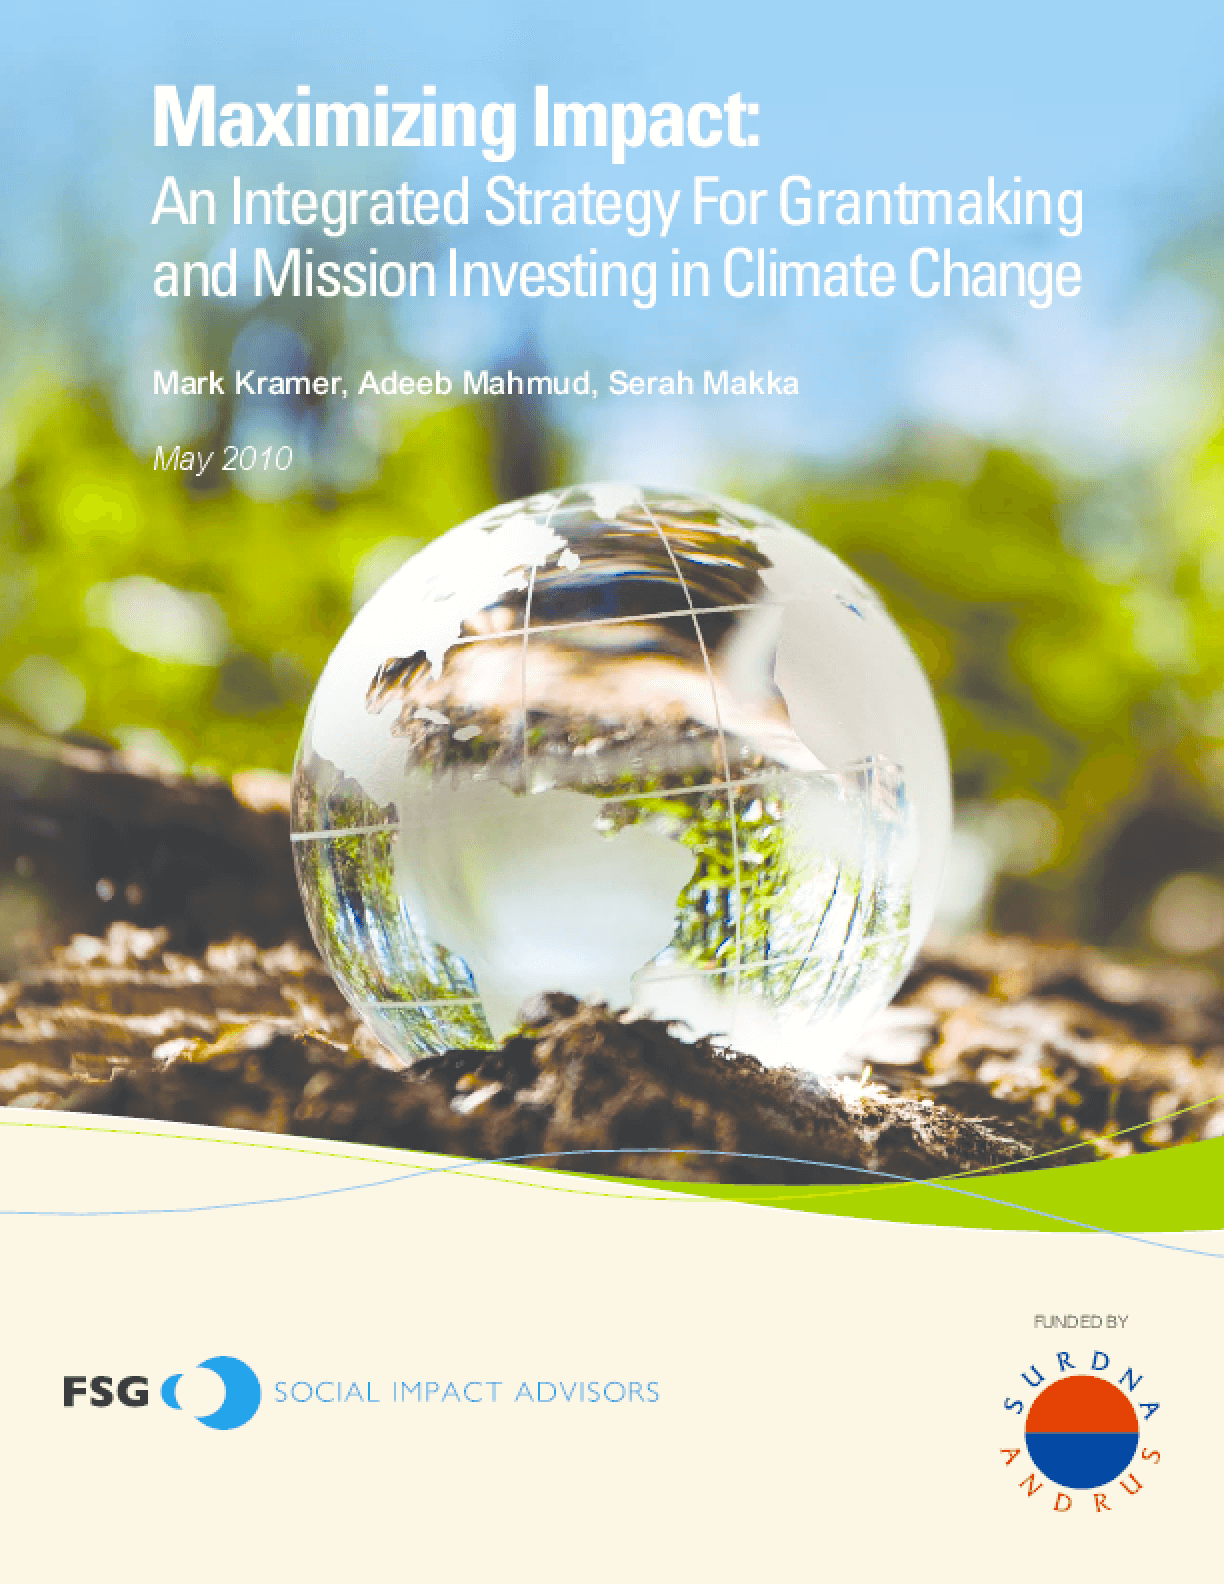 Maximizing Impact: An Integrated Strategy for Grantmaking and Mission Investing in Climate Change